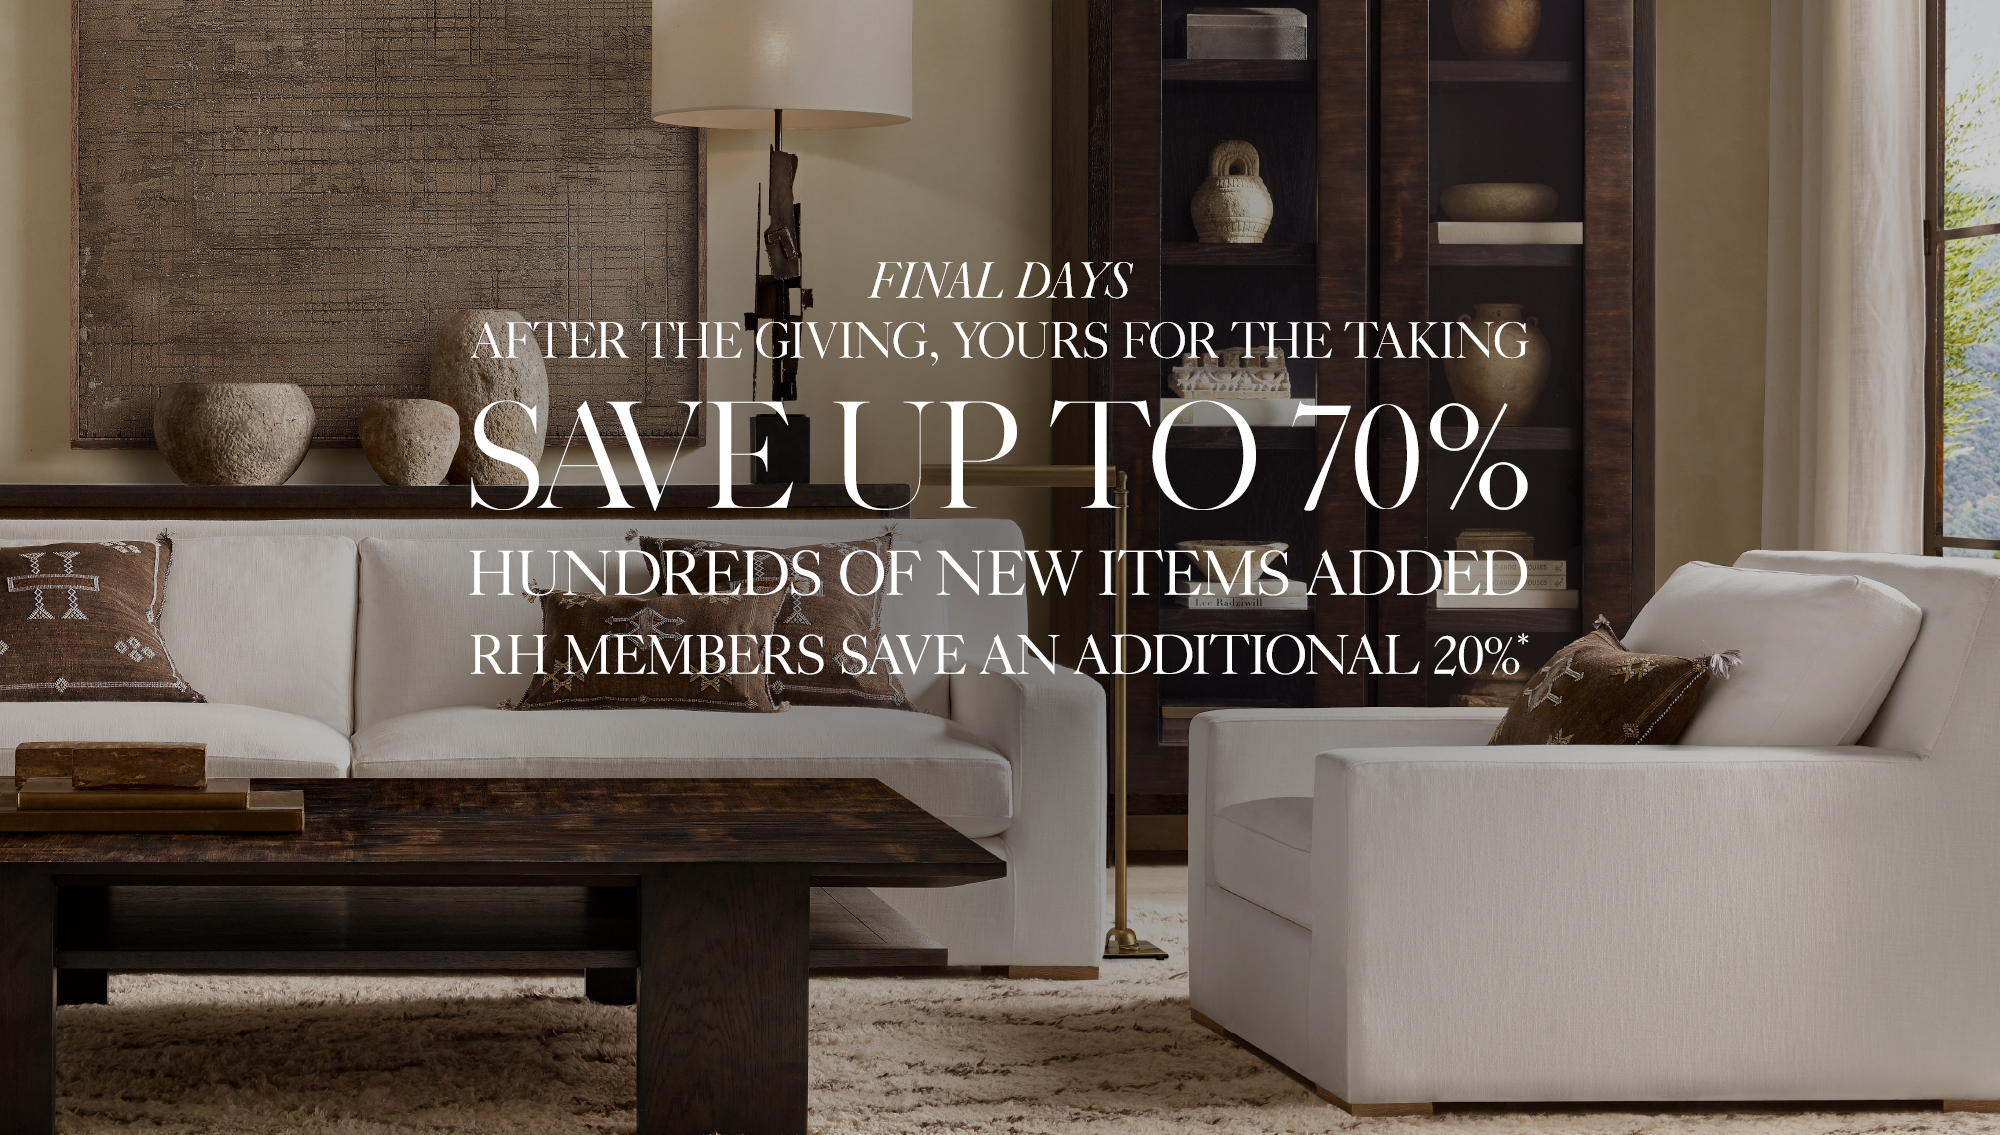 Final Week, After The Giving, Yours For The Taking. Save up to 70%, RH Members Save An Additional 20%*